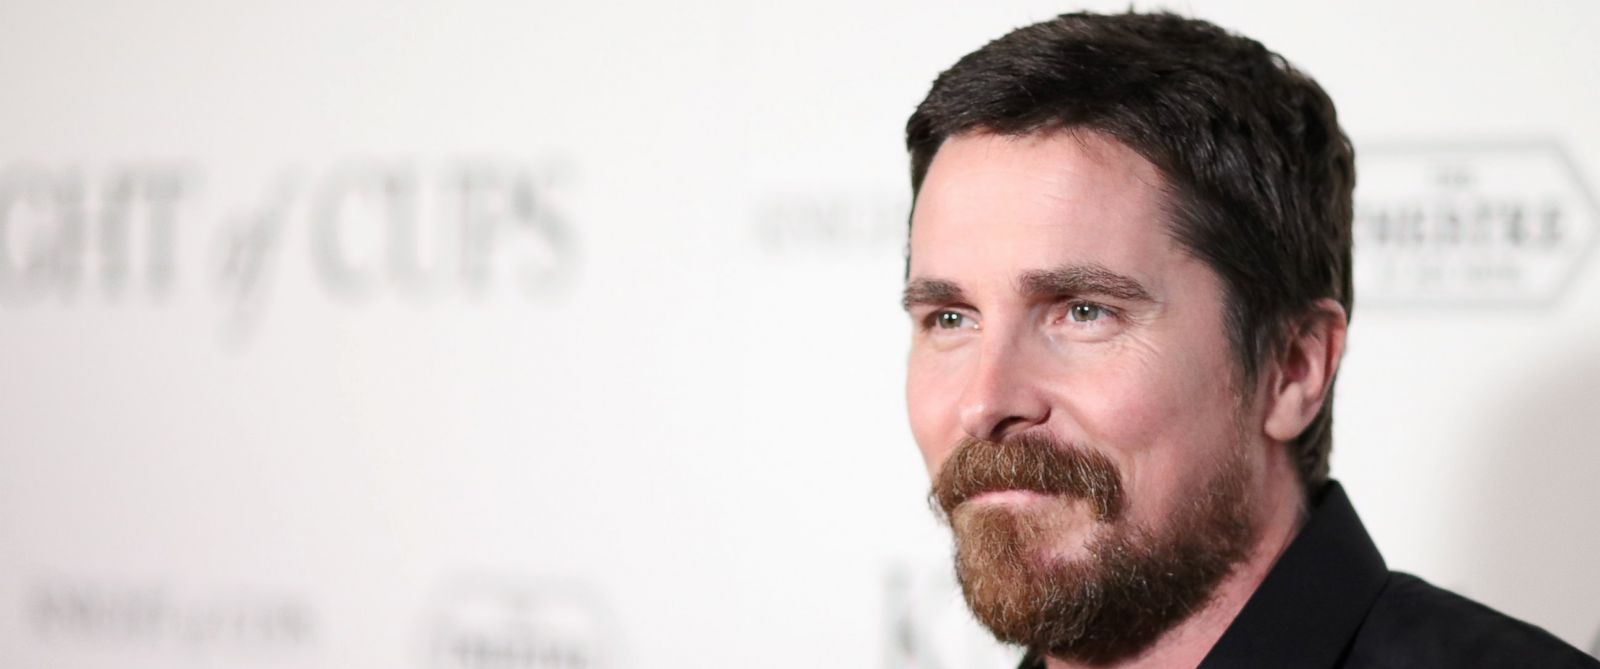 PHOTO: Christian Bale attends the premiere of Broad Green Pictures Knight of Cups held at The Theatre at Ace Hotel, March 1, 2016, in Los Angeles, California.